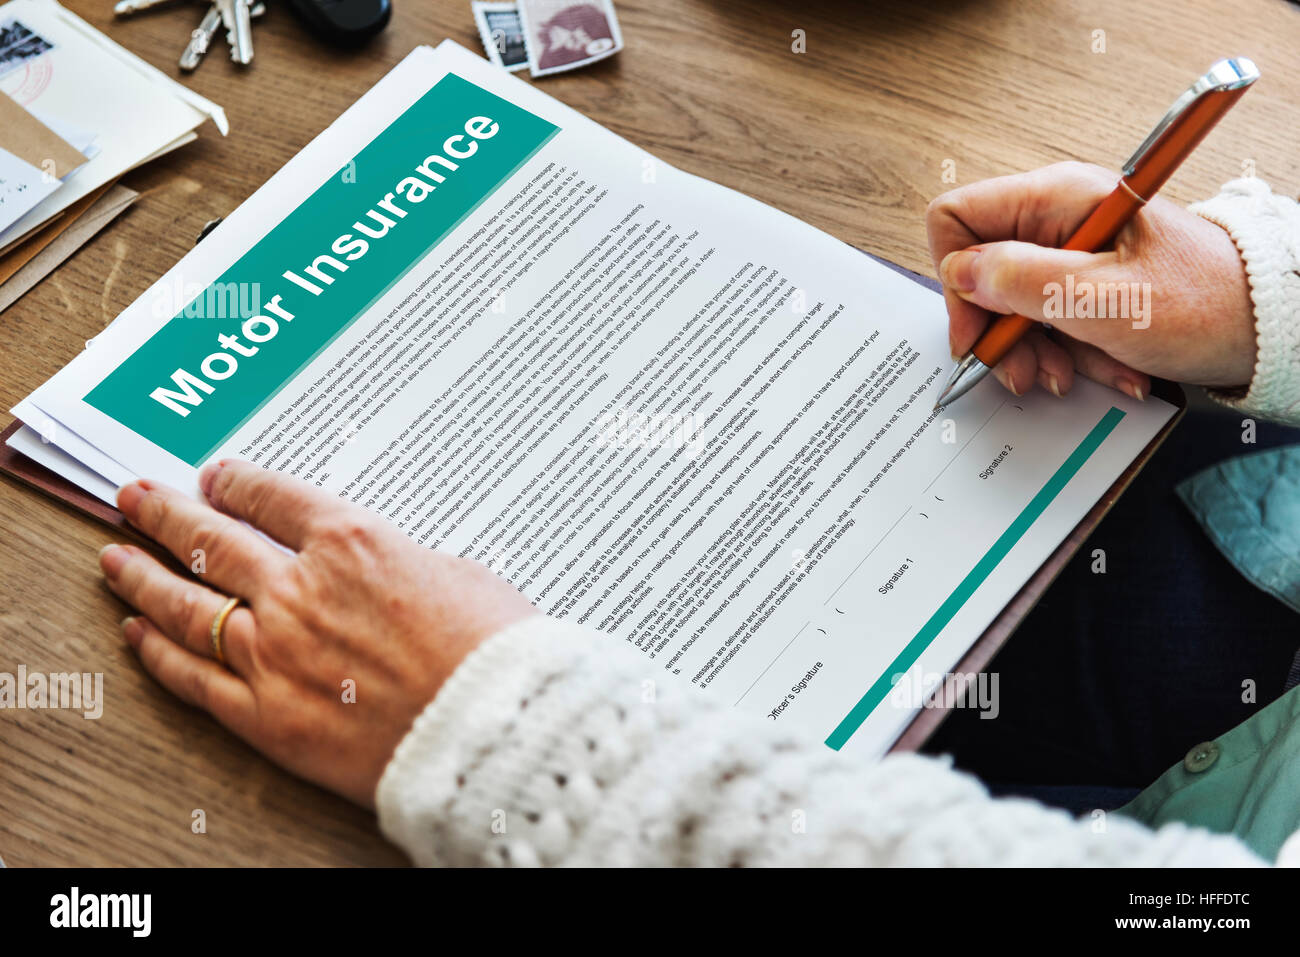 Motor Insurance Legal Claim Contract Documents Concept Stock Photo